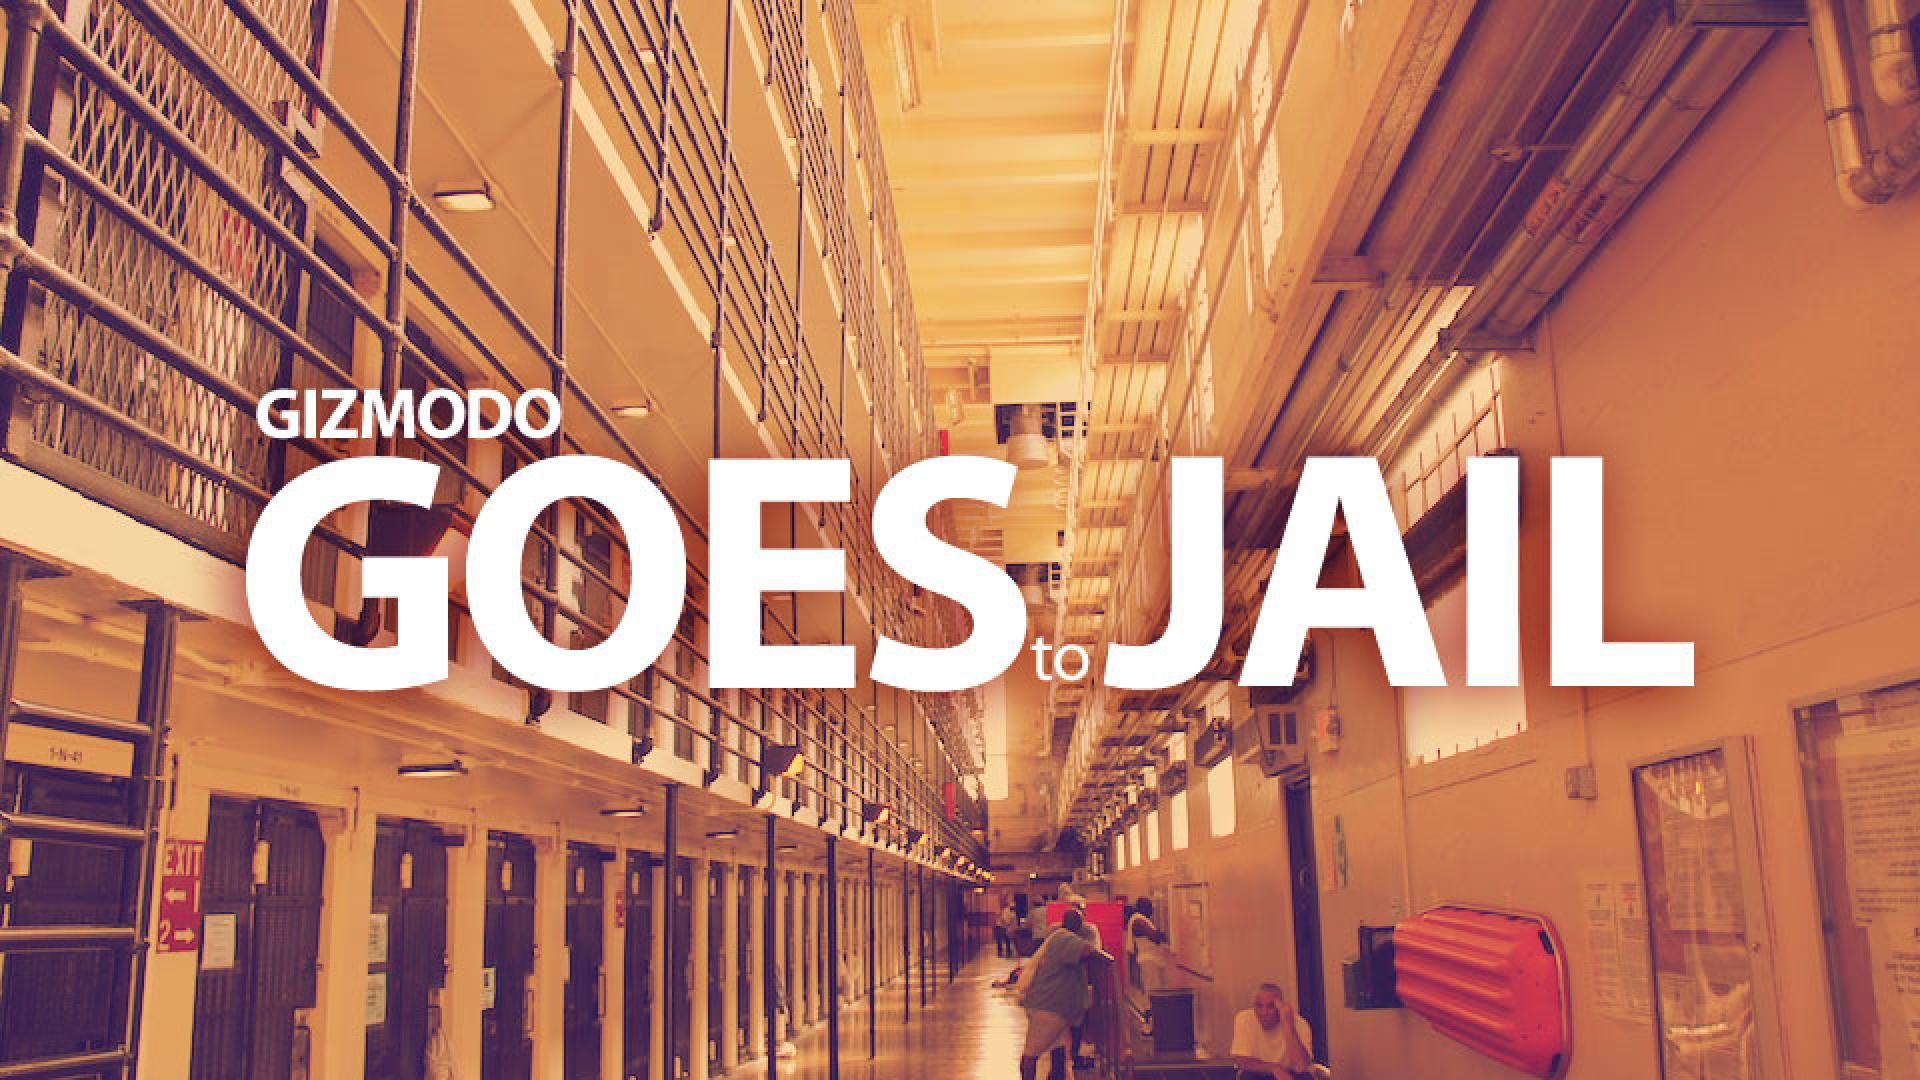 The Technology Inside America's Most Notorious Prison